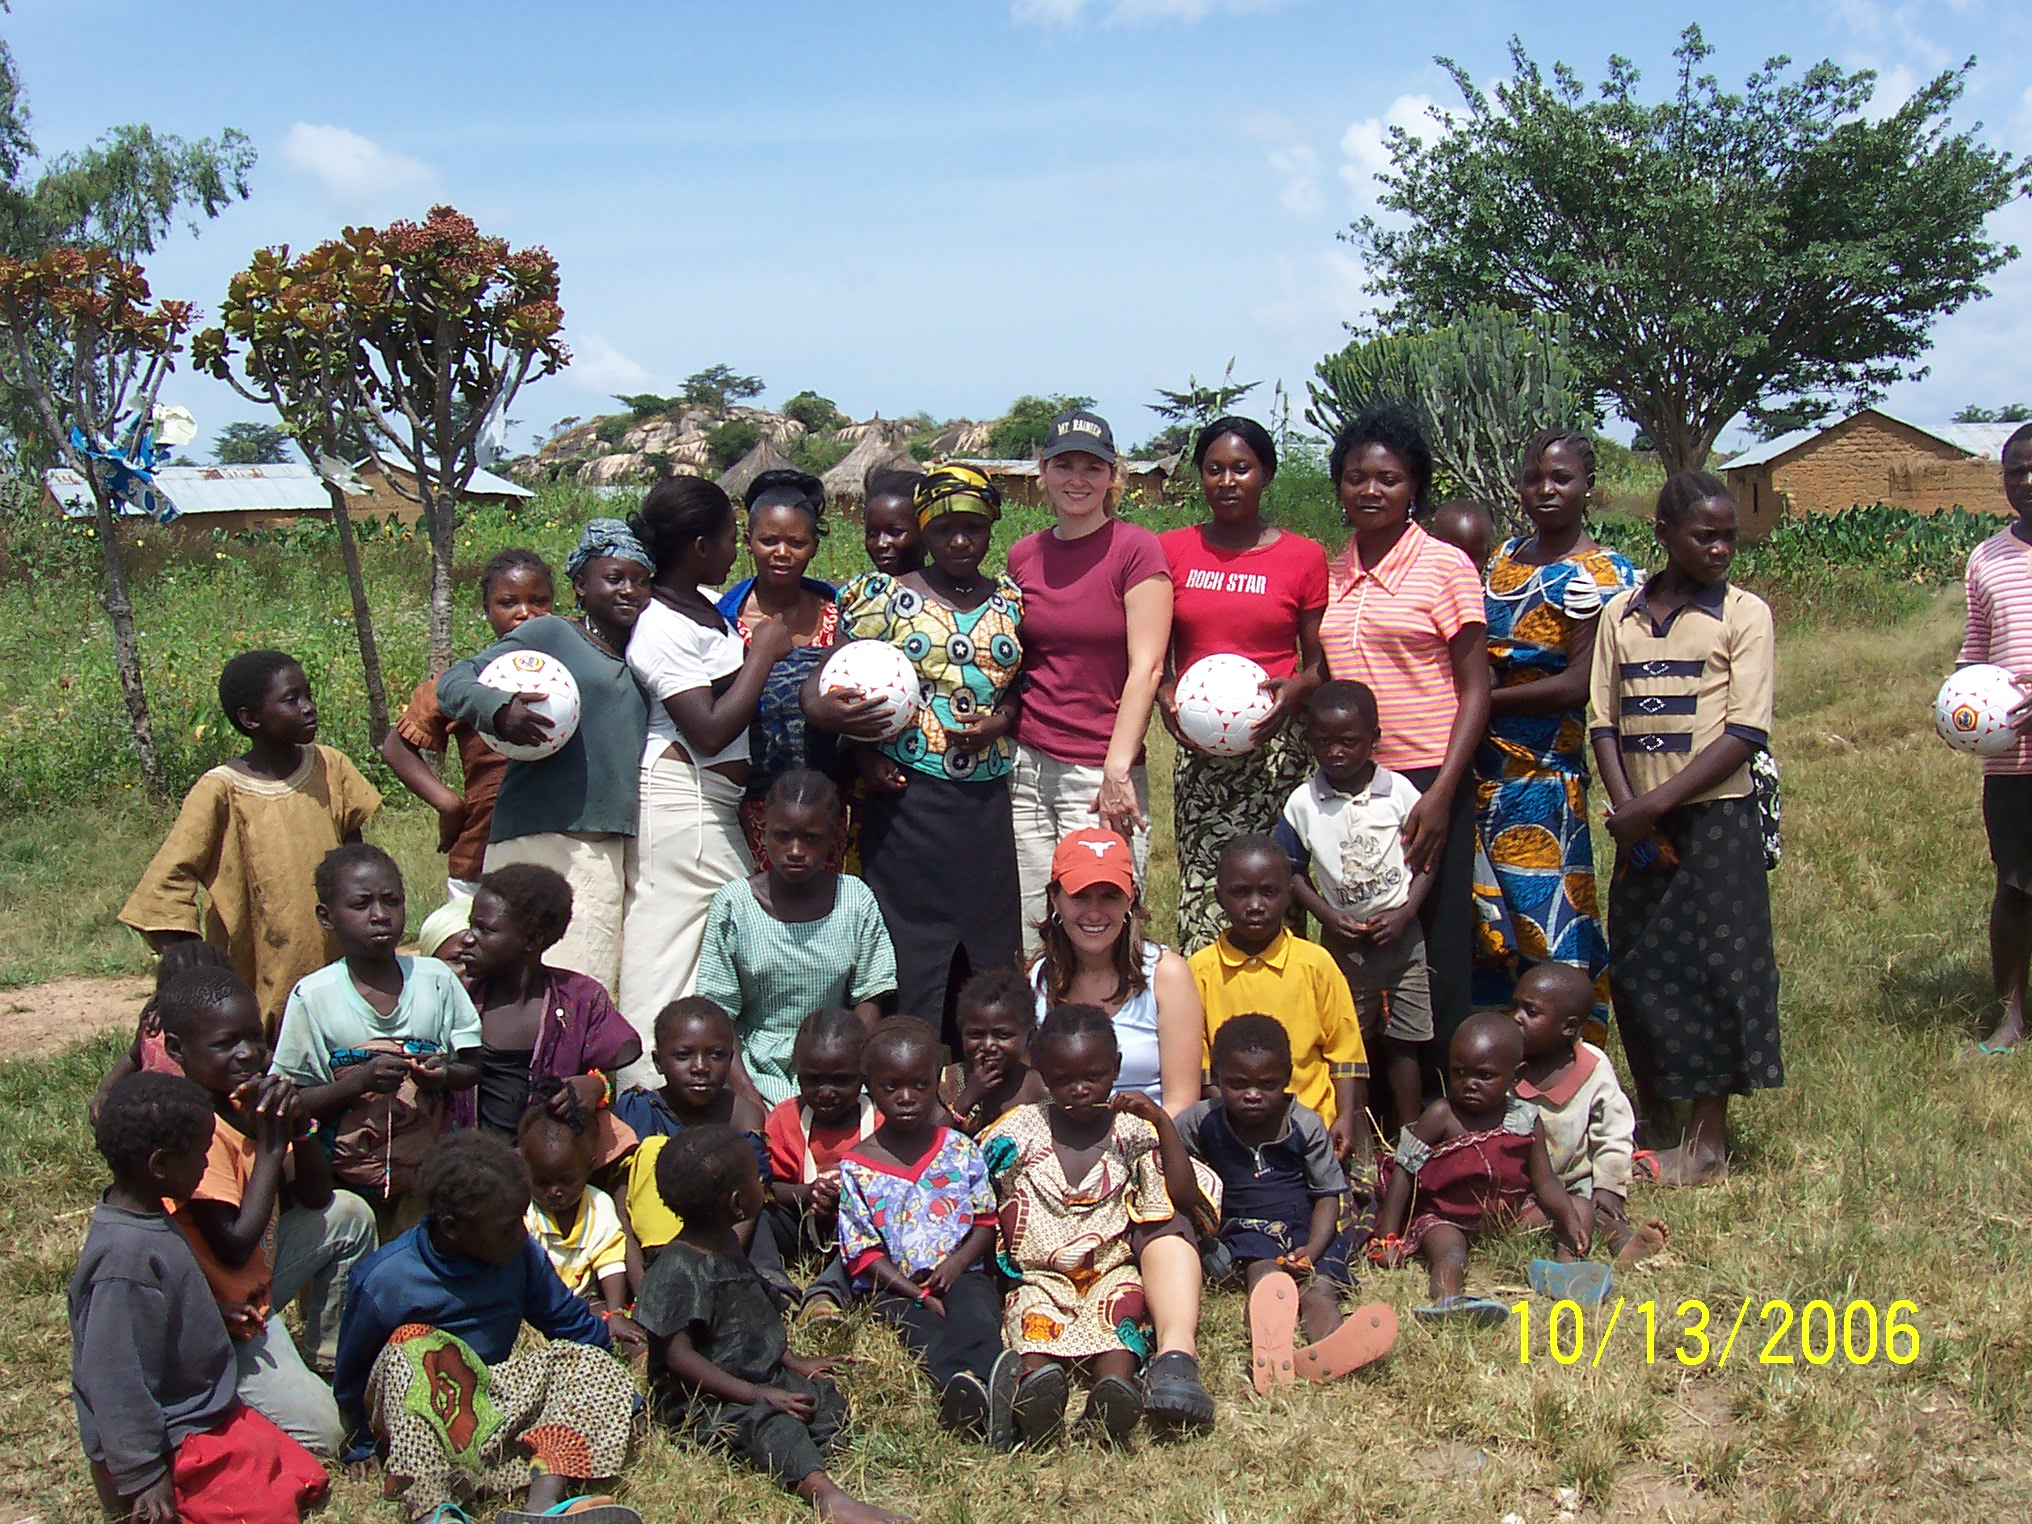 Handing out soccer balls to children in the village with the Munafos